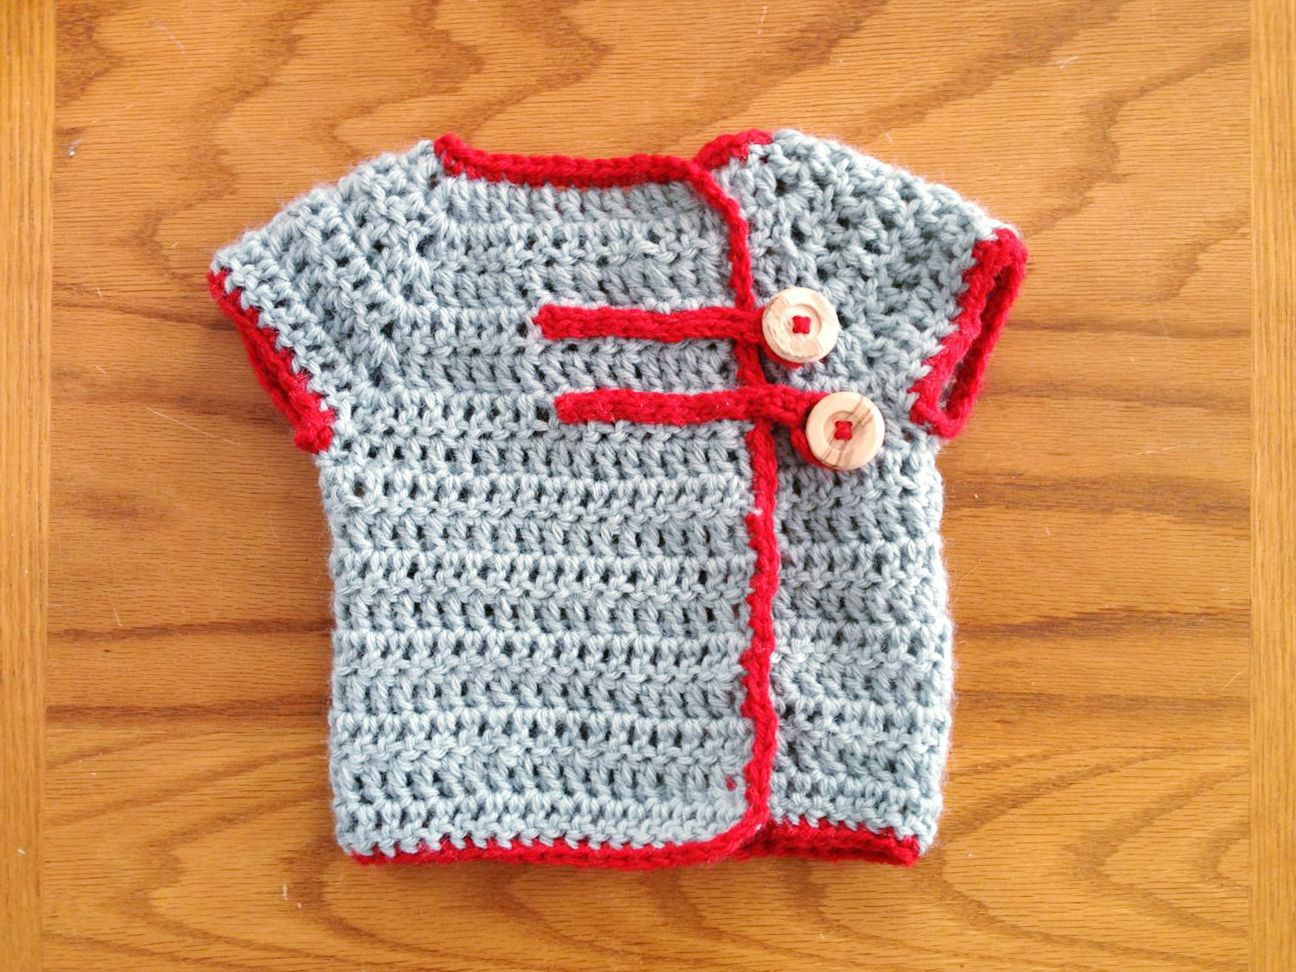 Naptime Craft: Springtime Baby Sweater | Baby sweaters, Crochet ...